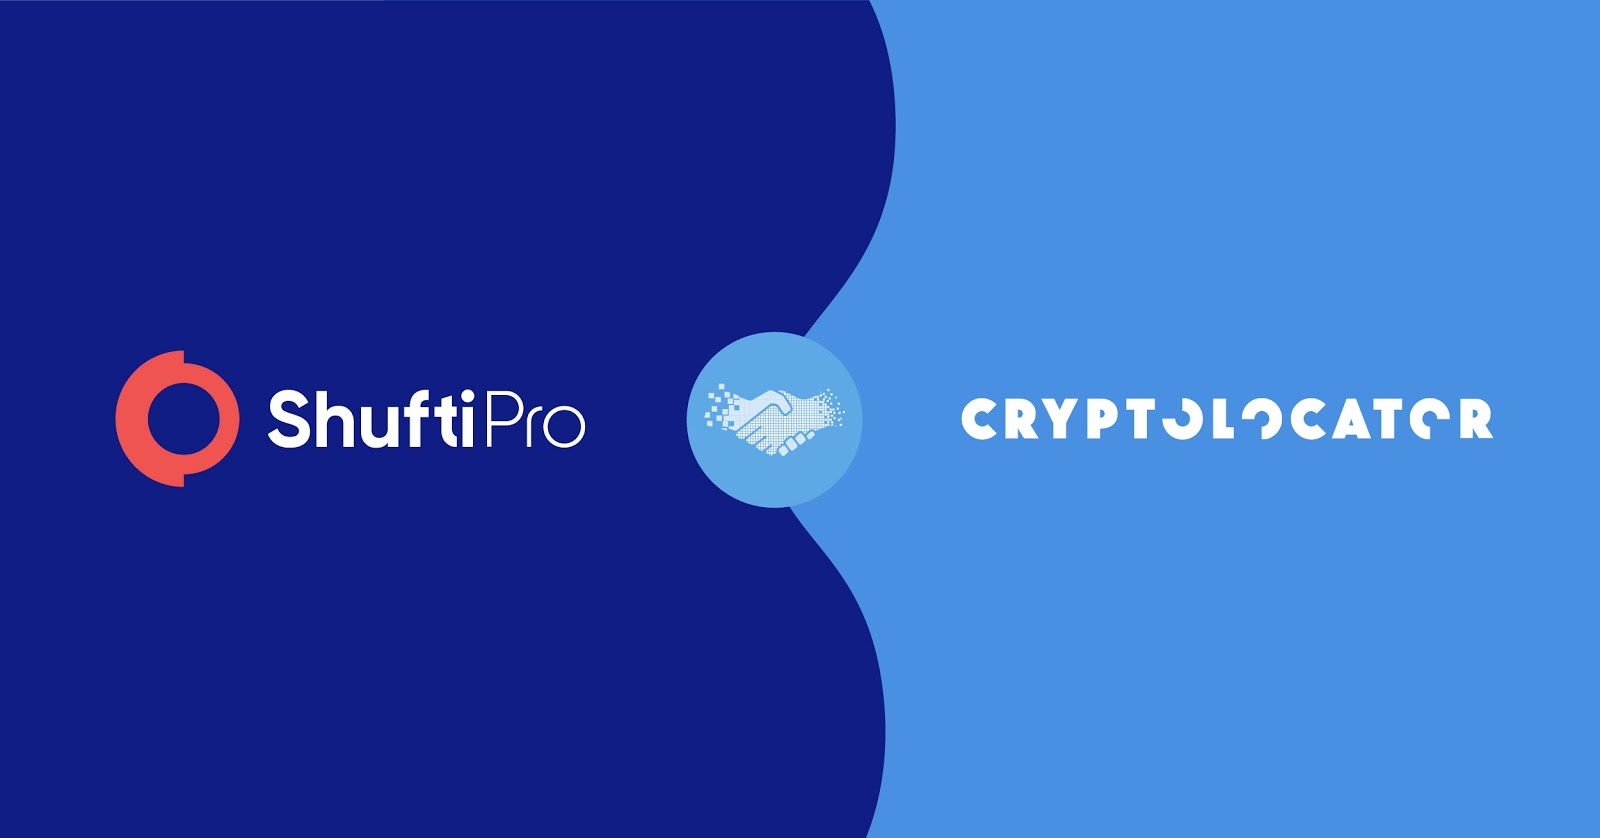 Cryptolocator Teams Up with Shufti Pro to Build a Sound KYC Structure